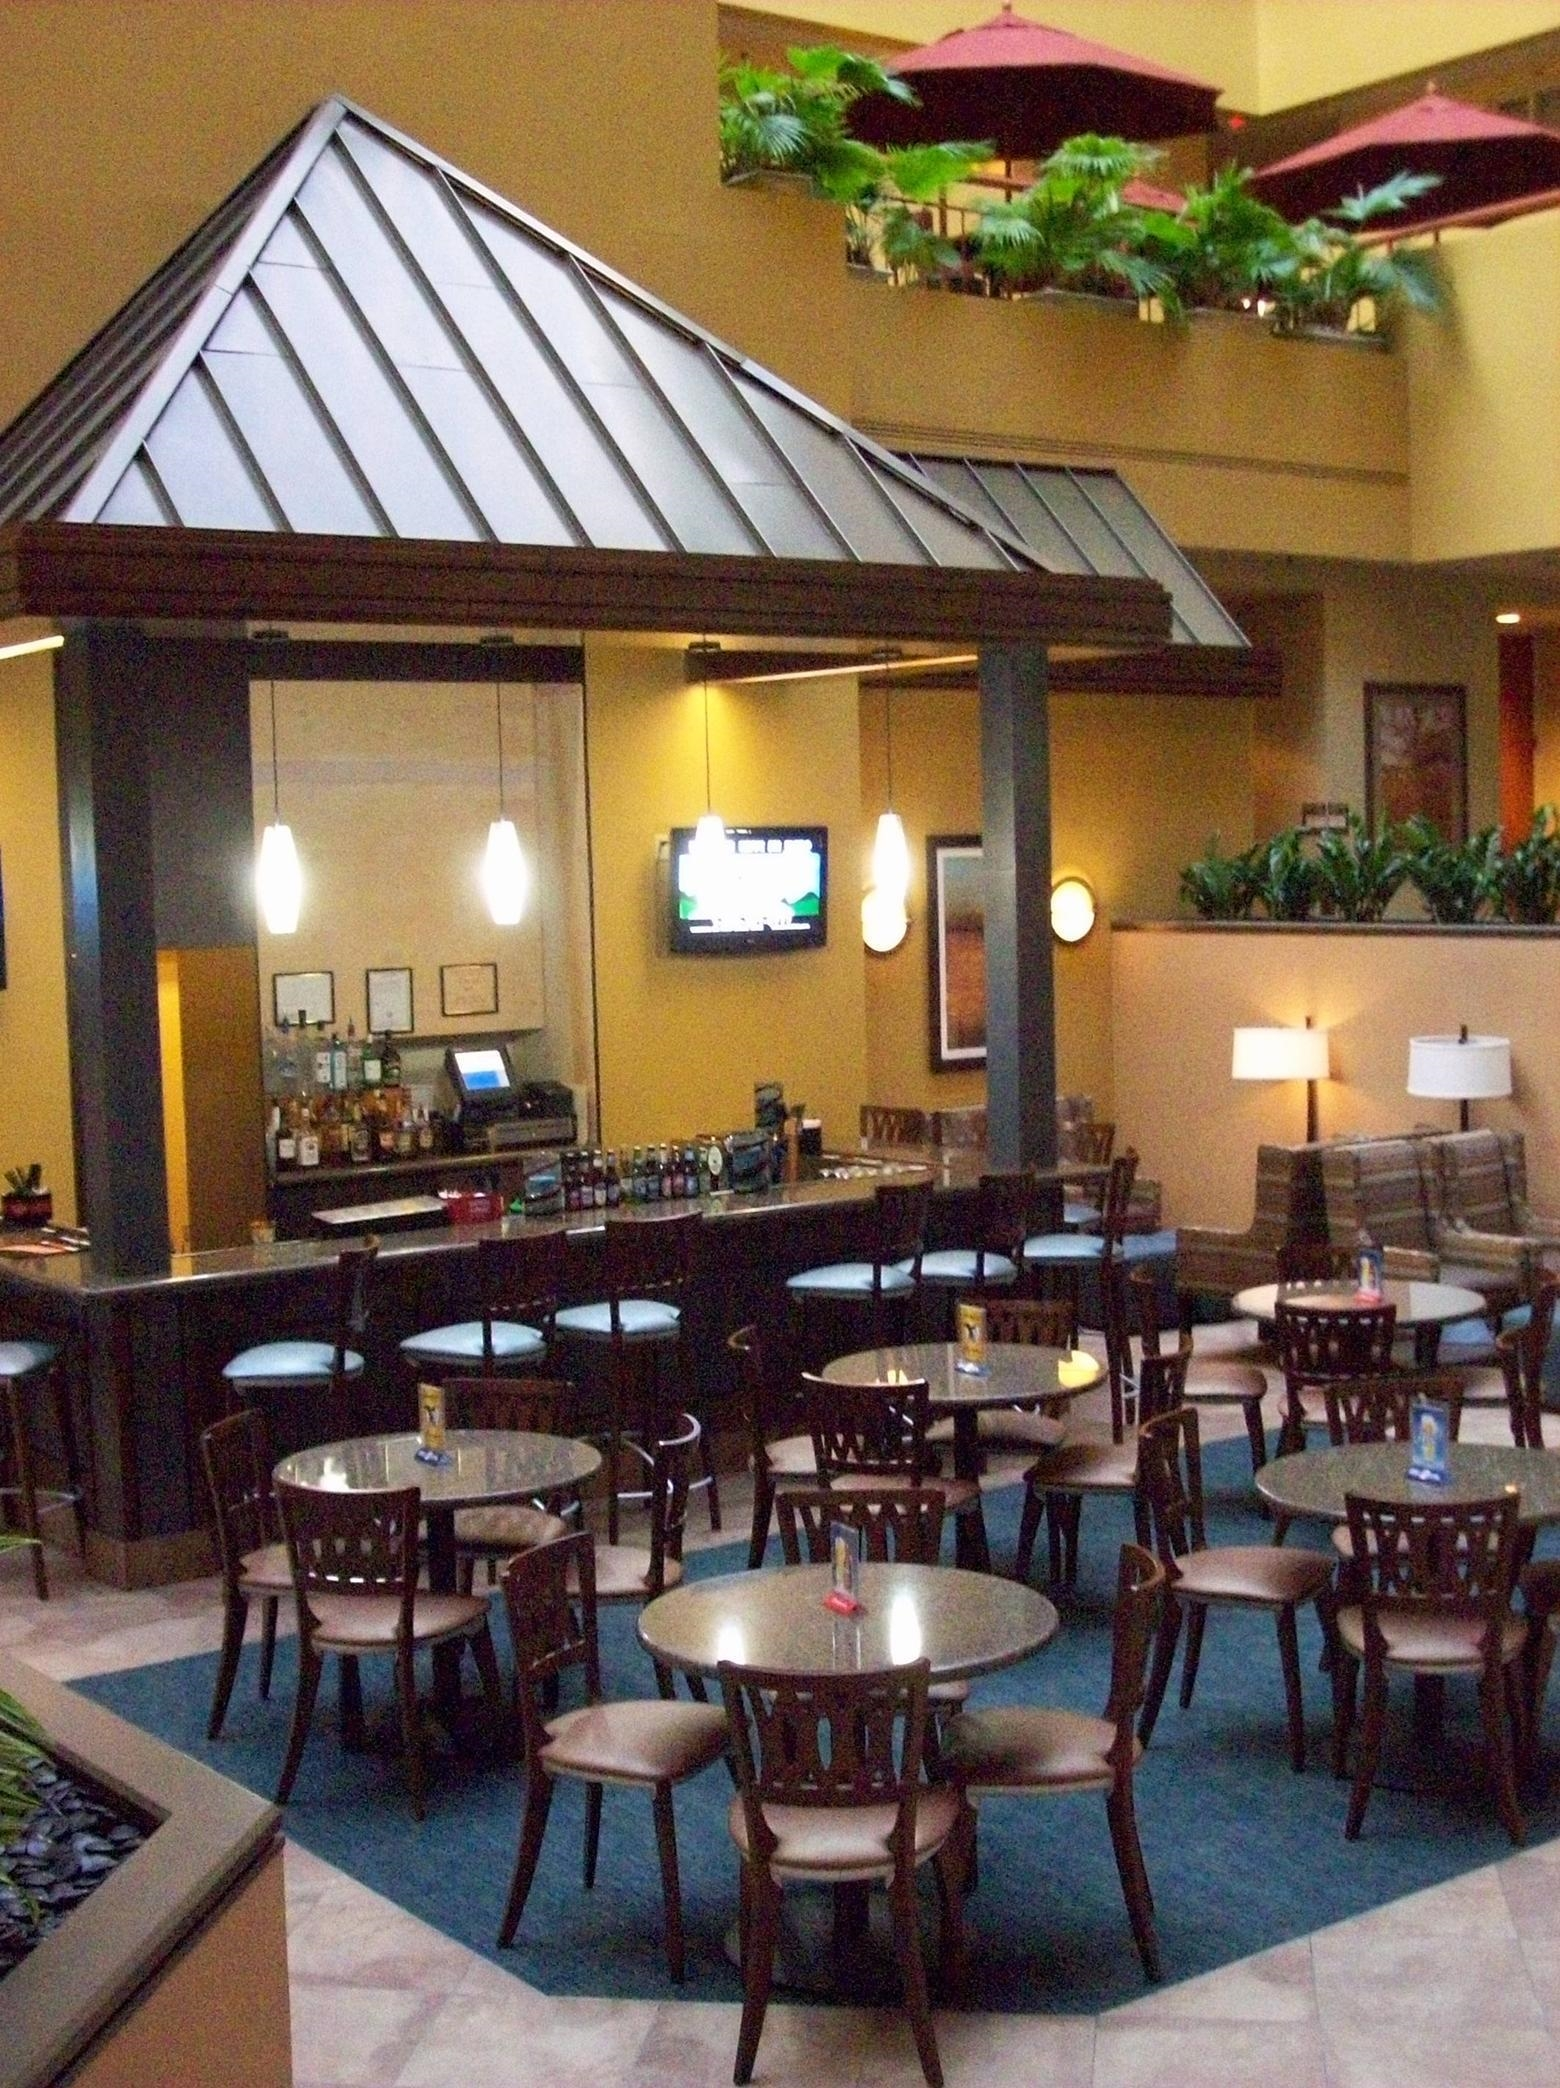 Embassy Suites by Hilton Baltimore at BWI Airport image 9